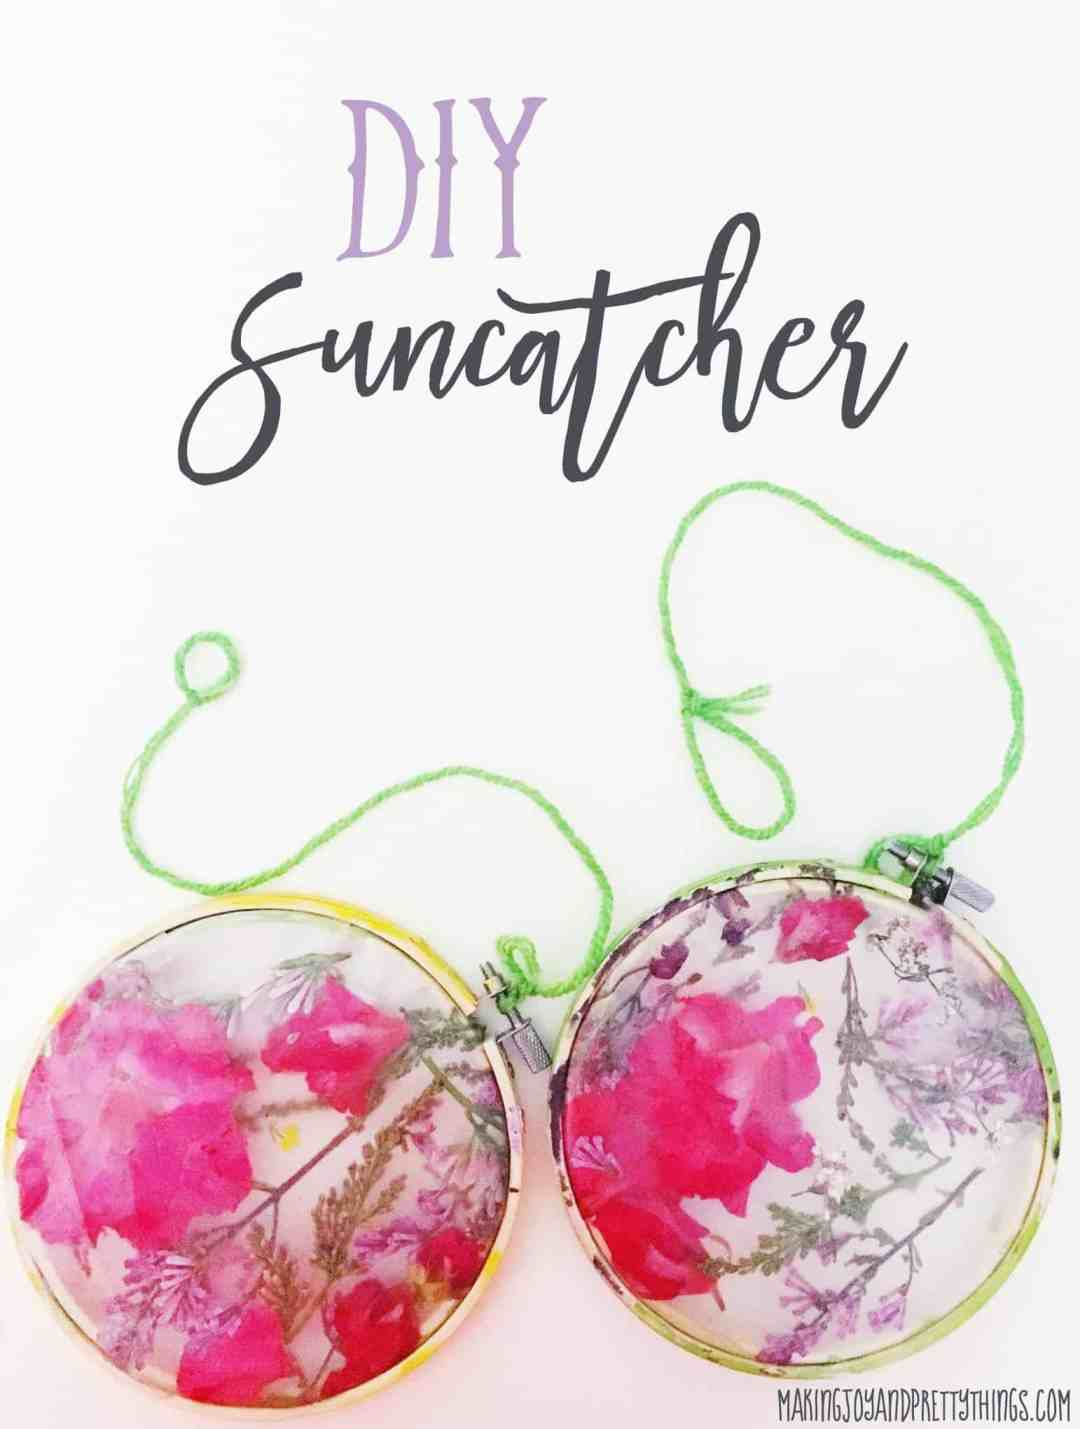 Easy DIY suncatcher craft for kids. Perfect gift for teachers, grandmothers and mothers for Mother's Day! Also great spring and summer outdoor craft for kids.